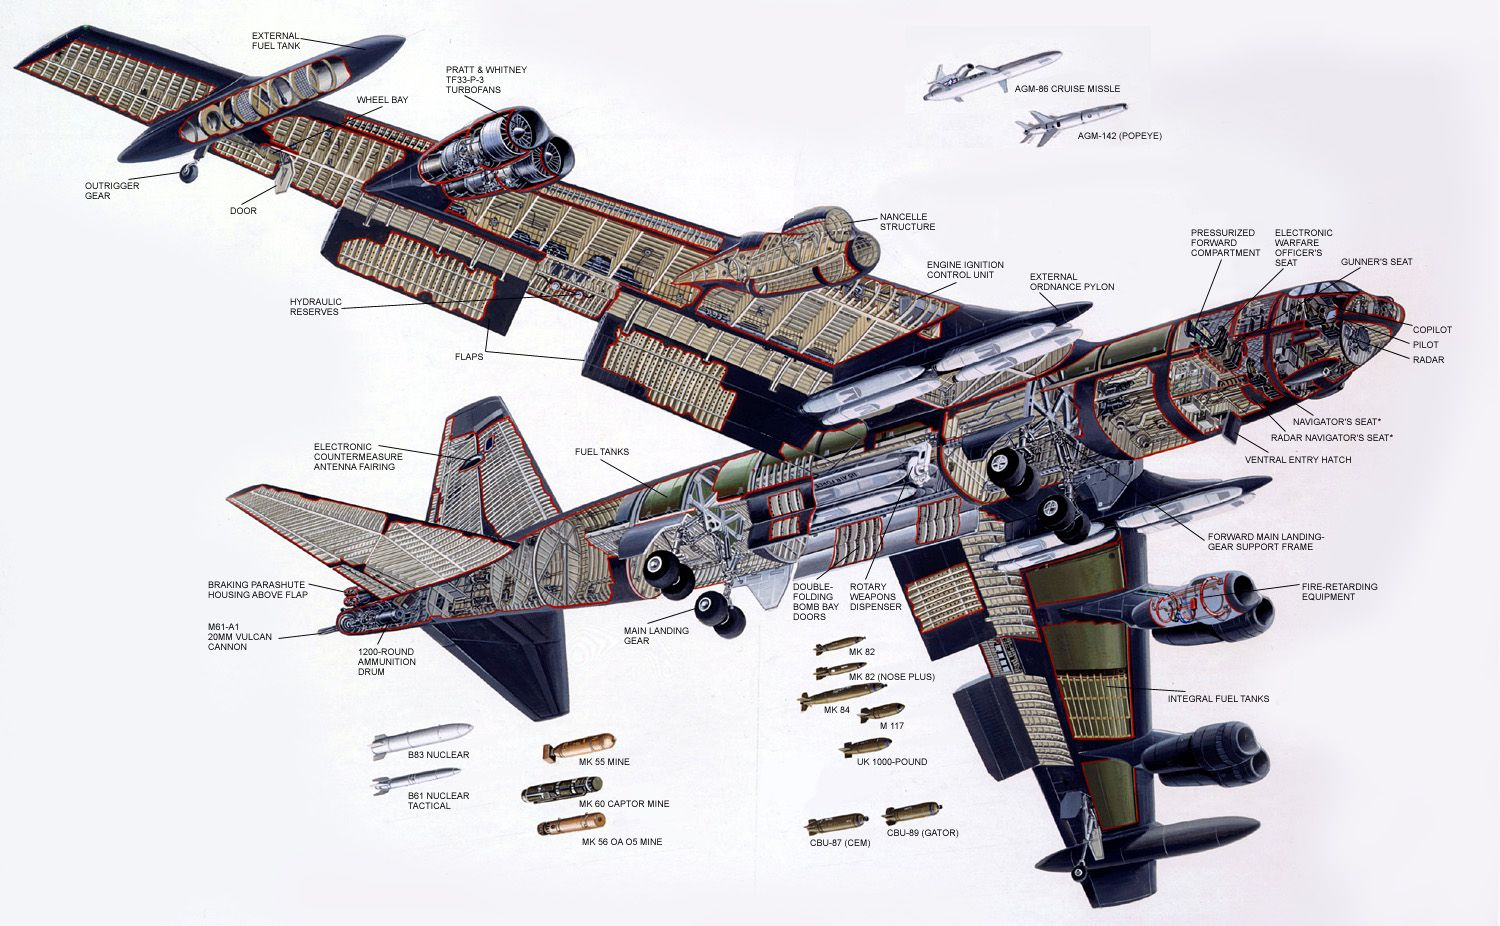 B-52 schematic [1500x956] | Military | Aircraft, Aircraft design, B